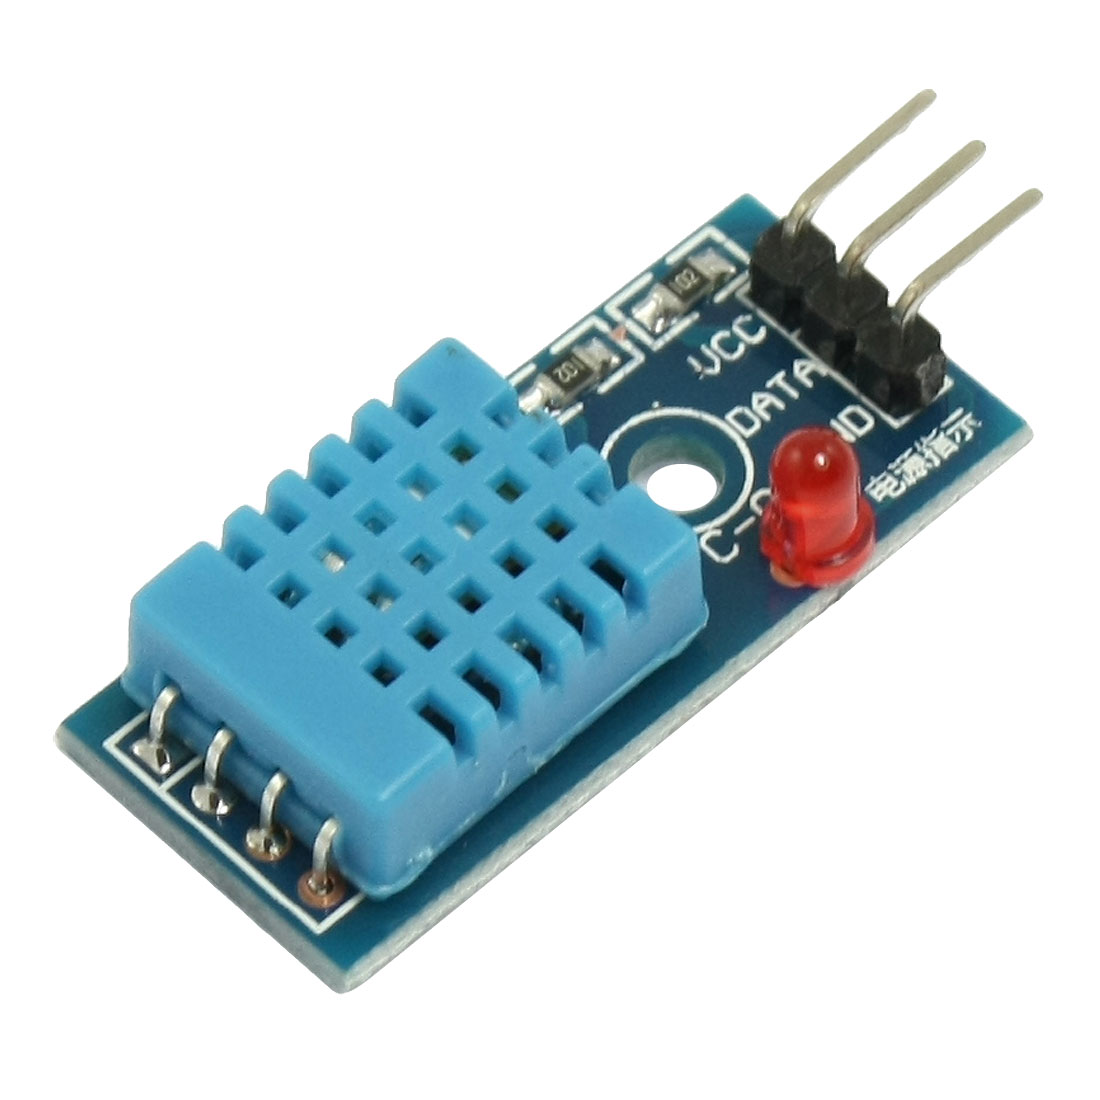 DHT11 Single Digital Output Temperature Humidity Sensor Module